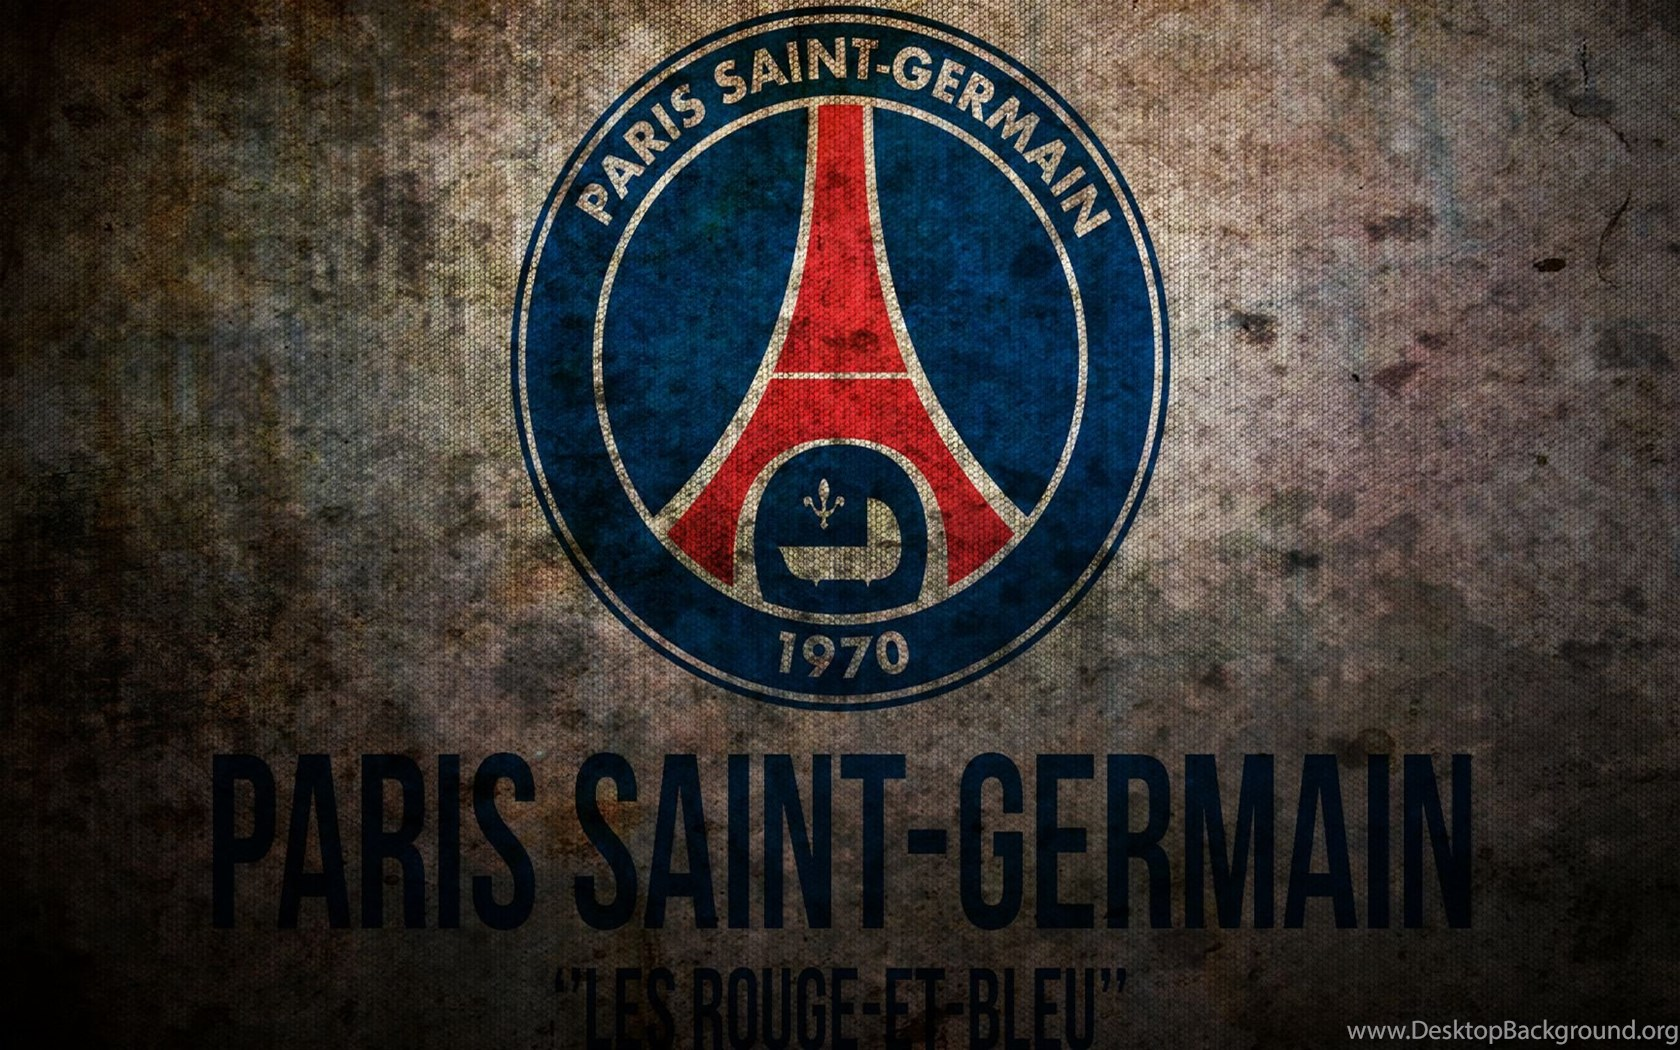 Paris Saint Germain Wallpapers Hd Wallpapers Zone Desktop Background